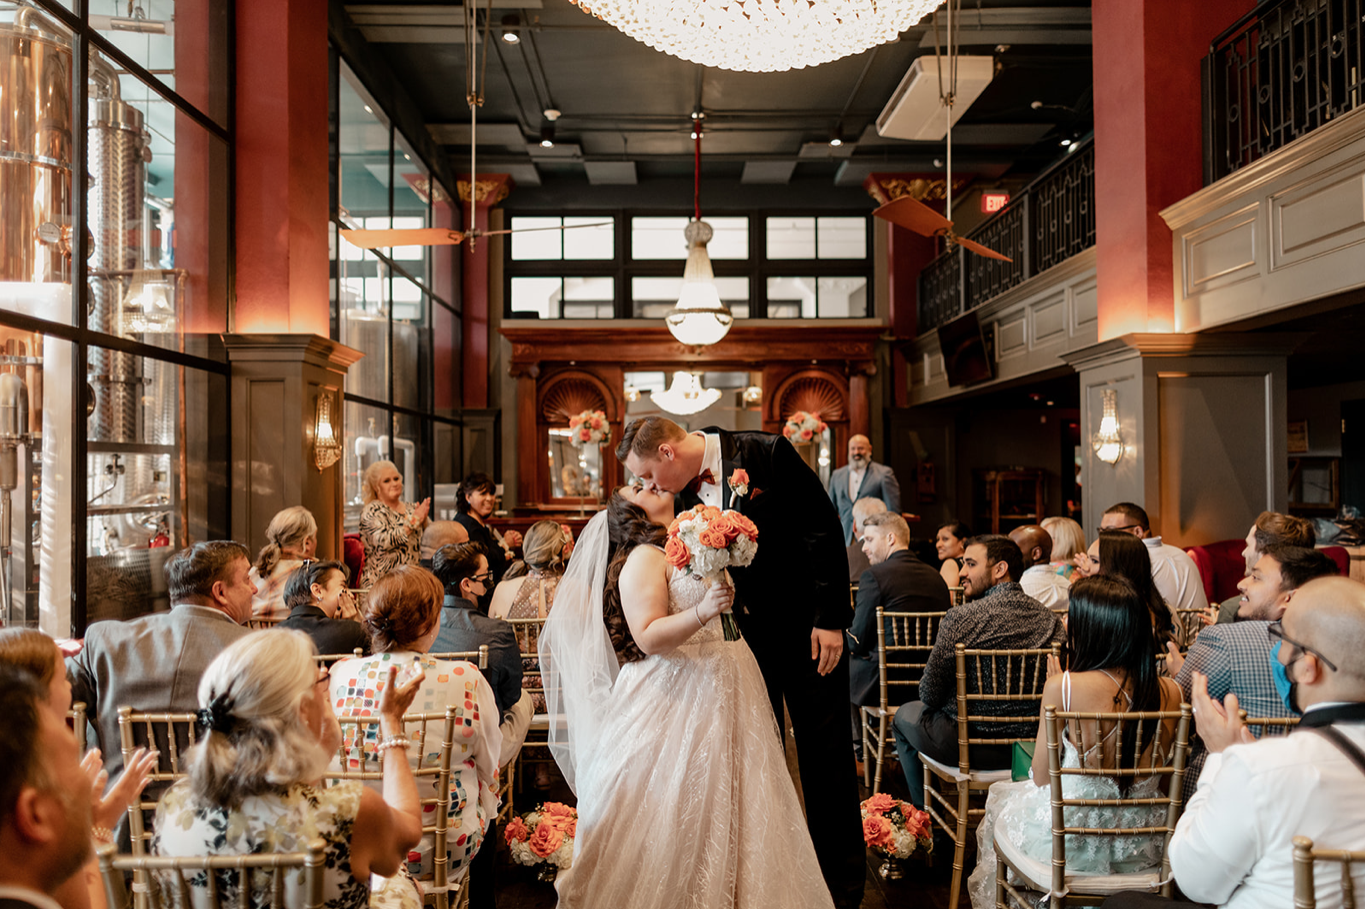 A wedding couple is kissing each other and standing next to their guests in the Devils River Distillery.